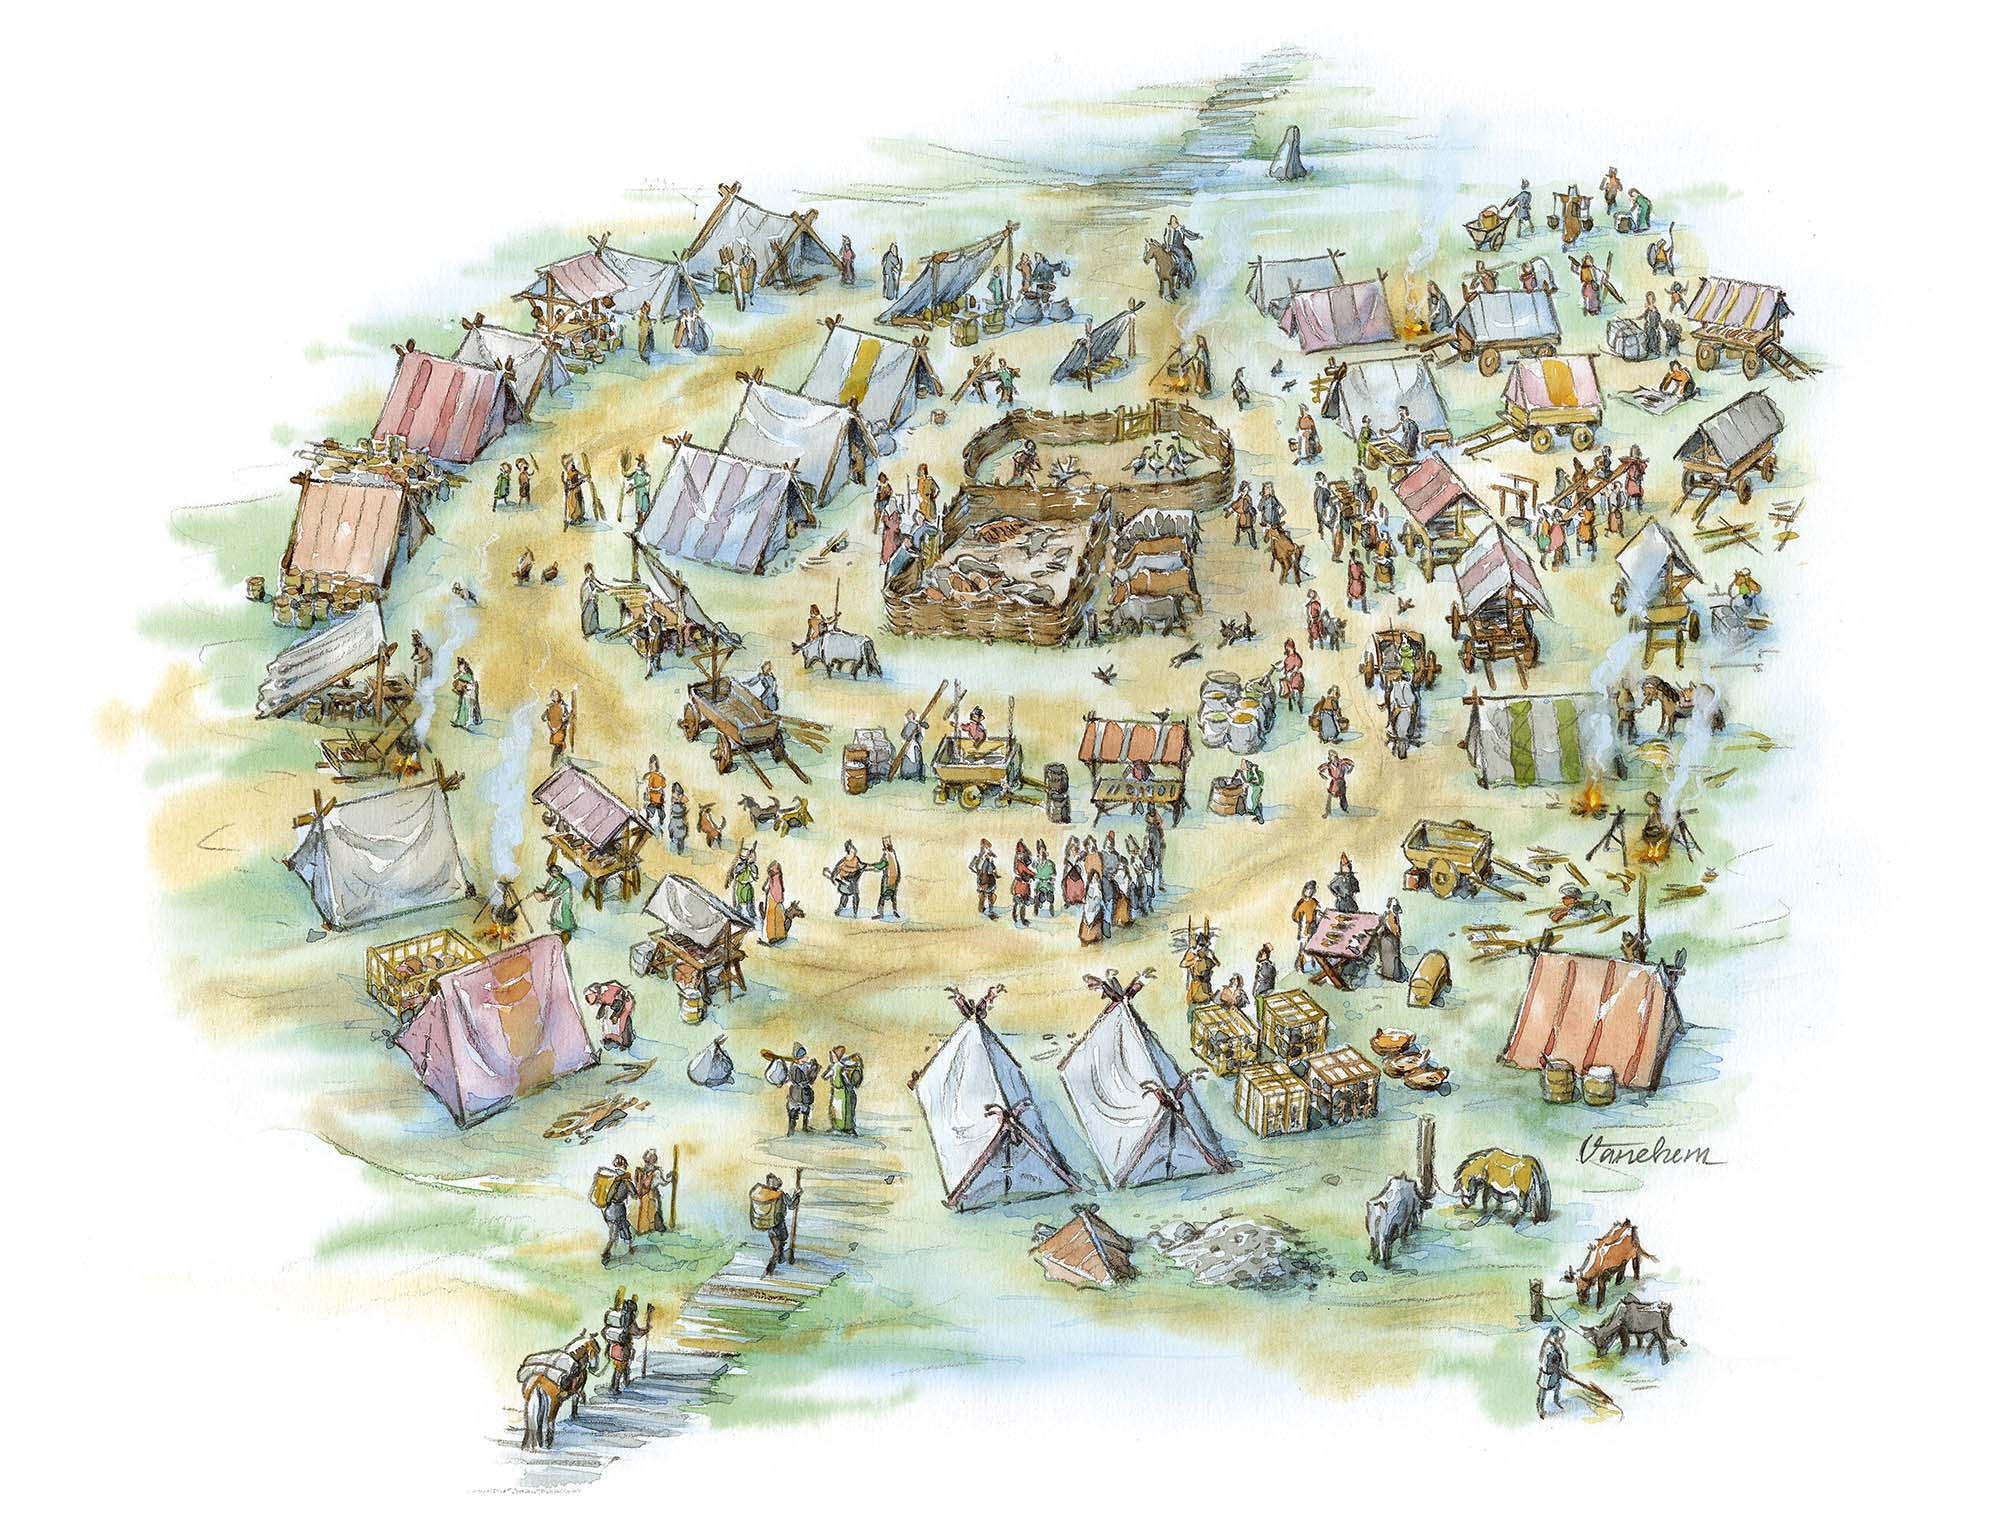 Market place in Iron Age Uppakra, Sweden